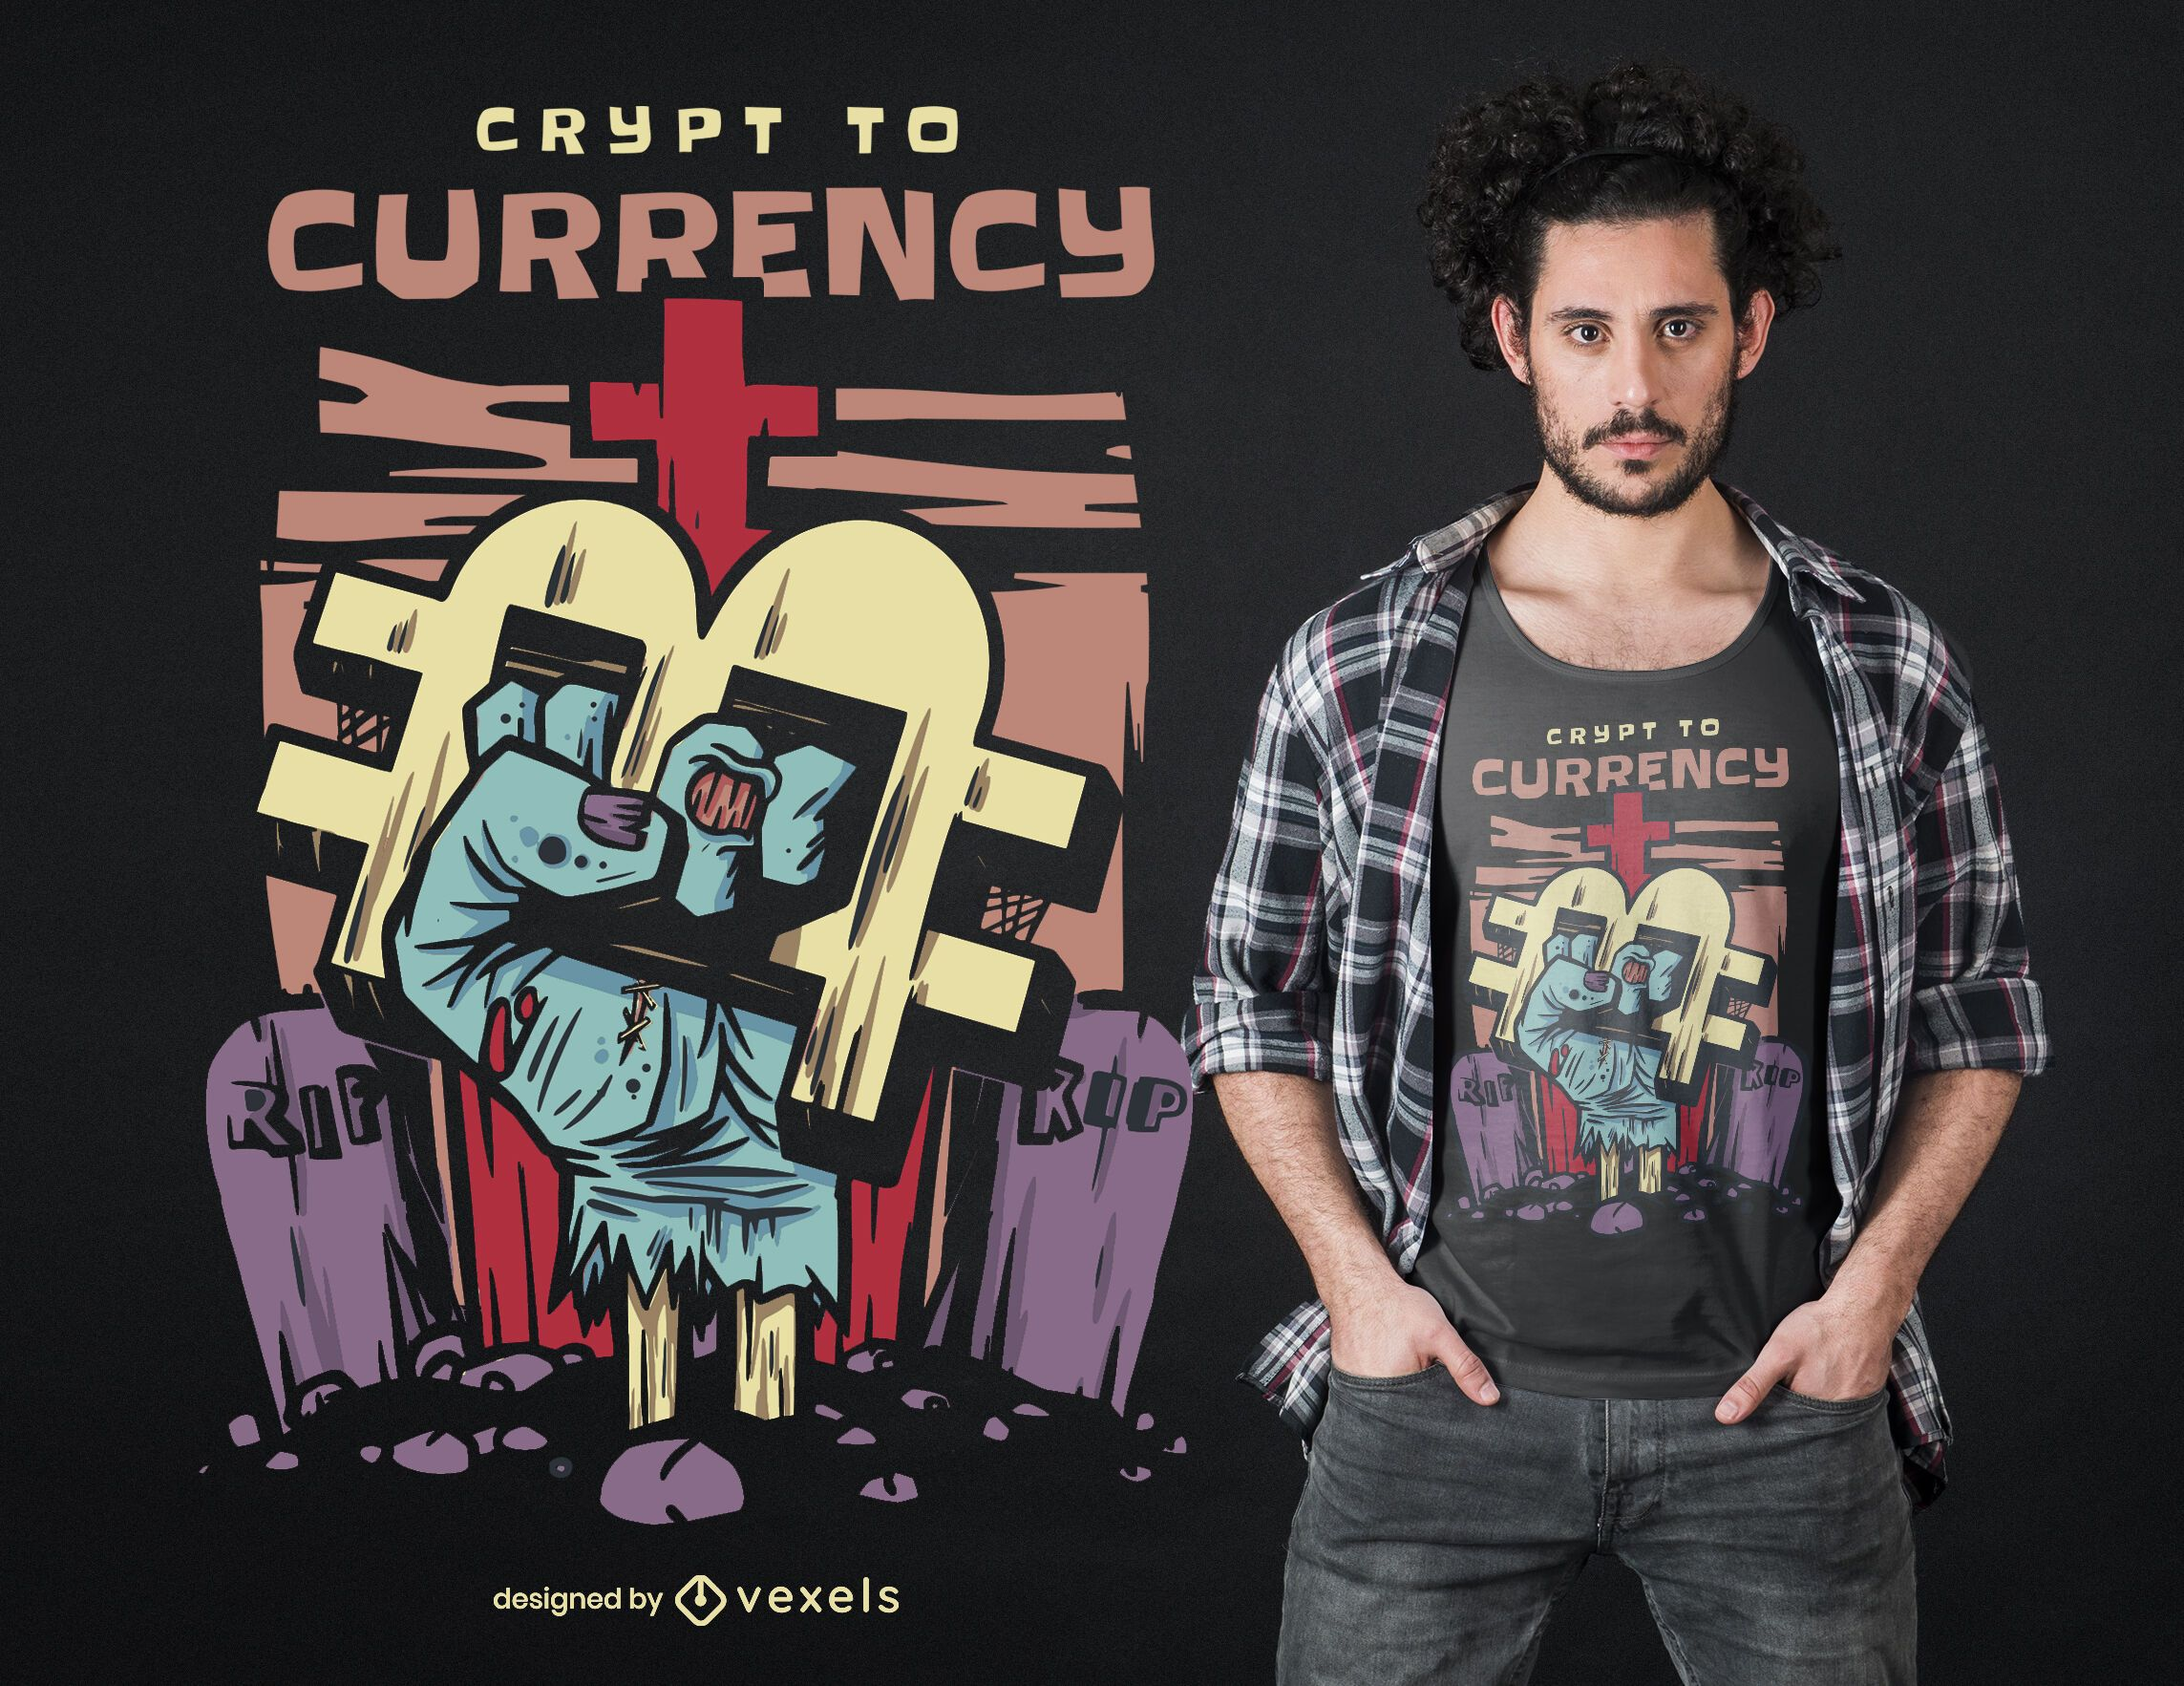 Crypt to currency t-shirt design